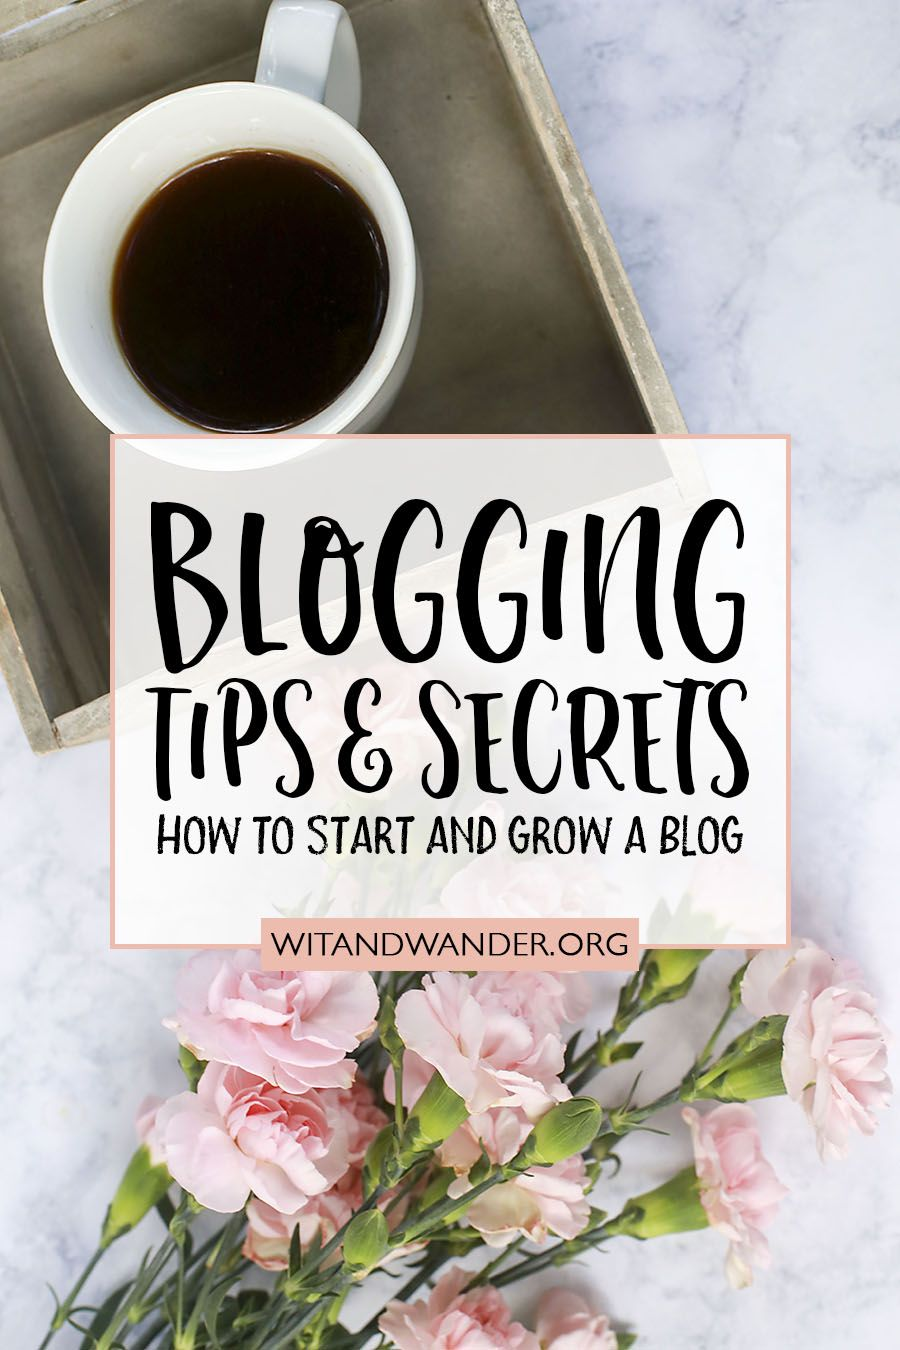 Blogging Tips & Secrets How to Start and Grow a Blog